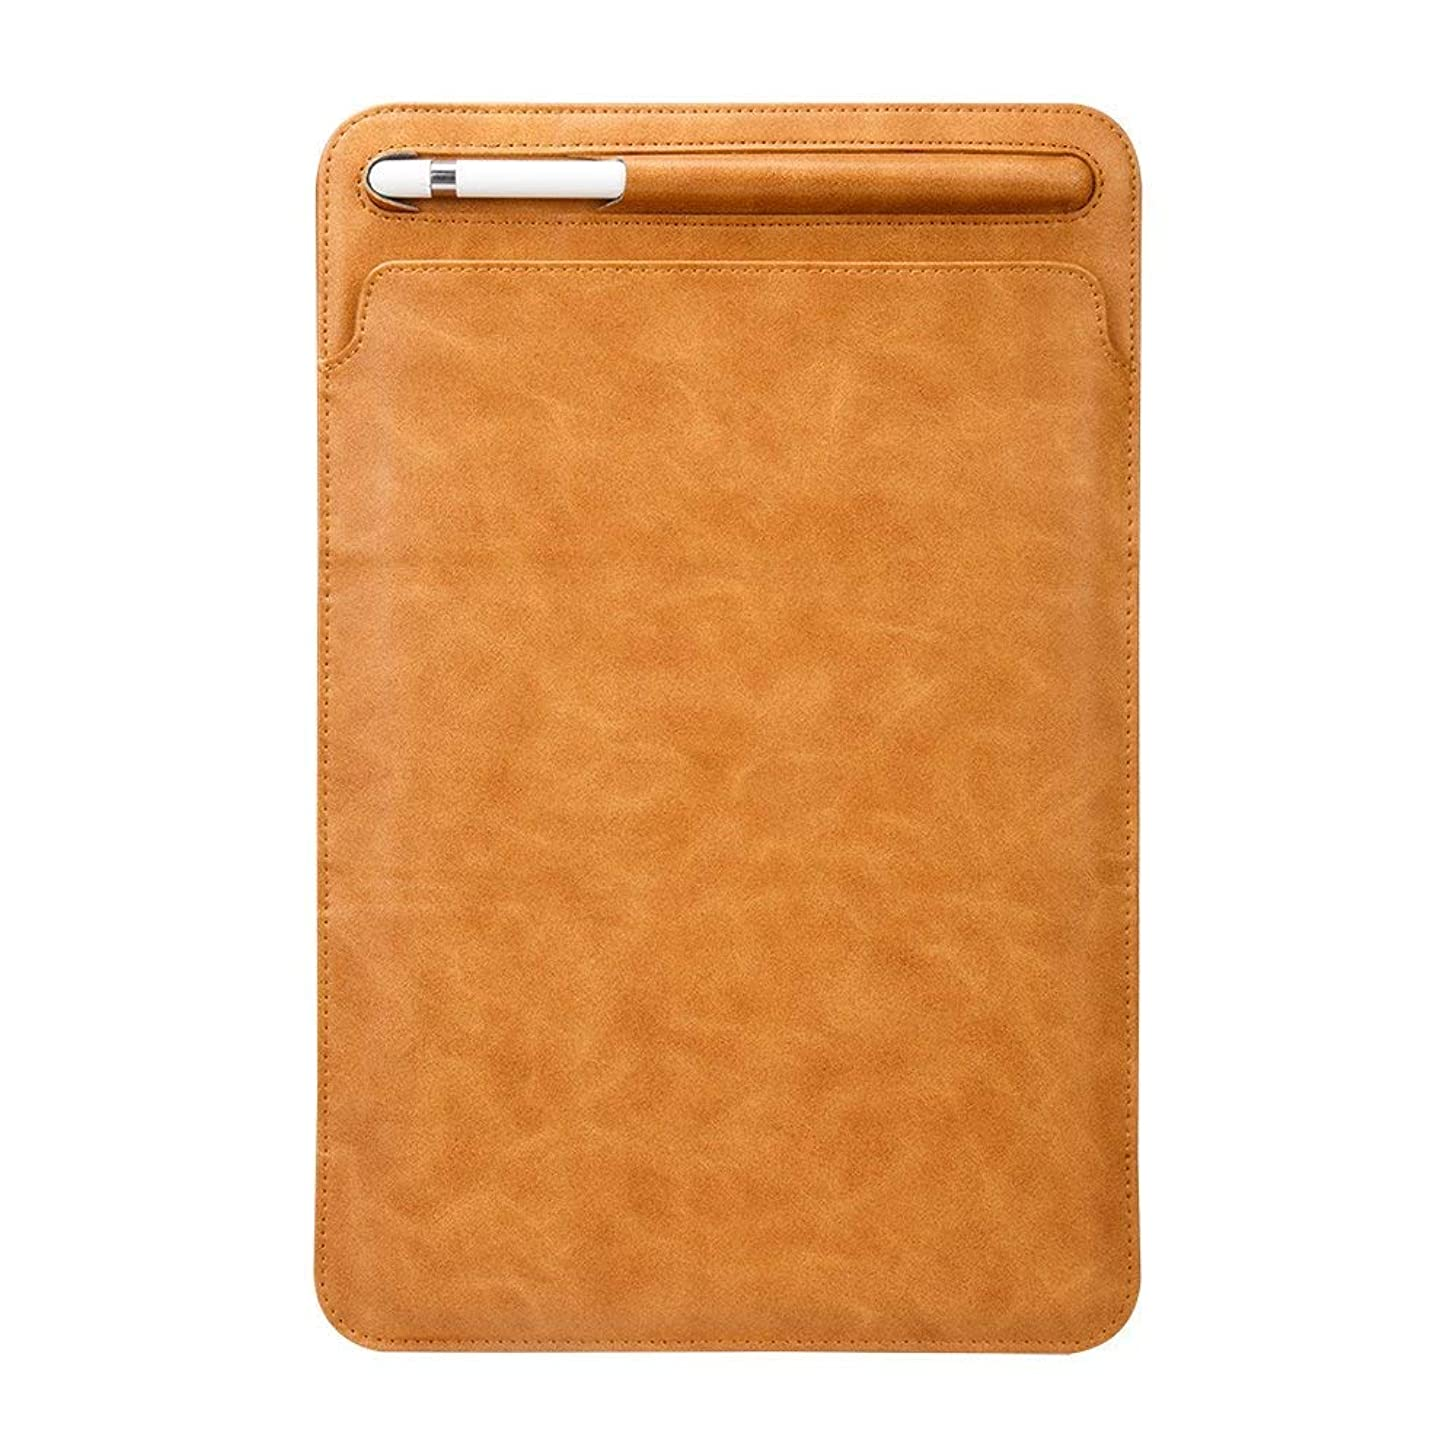 iPad Pro 11 Inch Stand Case 2018,Miya Luxury Pu Leather Smart Case Ultra Lightweigh Cover with Pencil Holder Kickstand Business Protective Case Sleeve Bag Pouch for iPad Pro 11 inch 2018,Light Brown